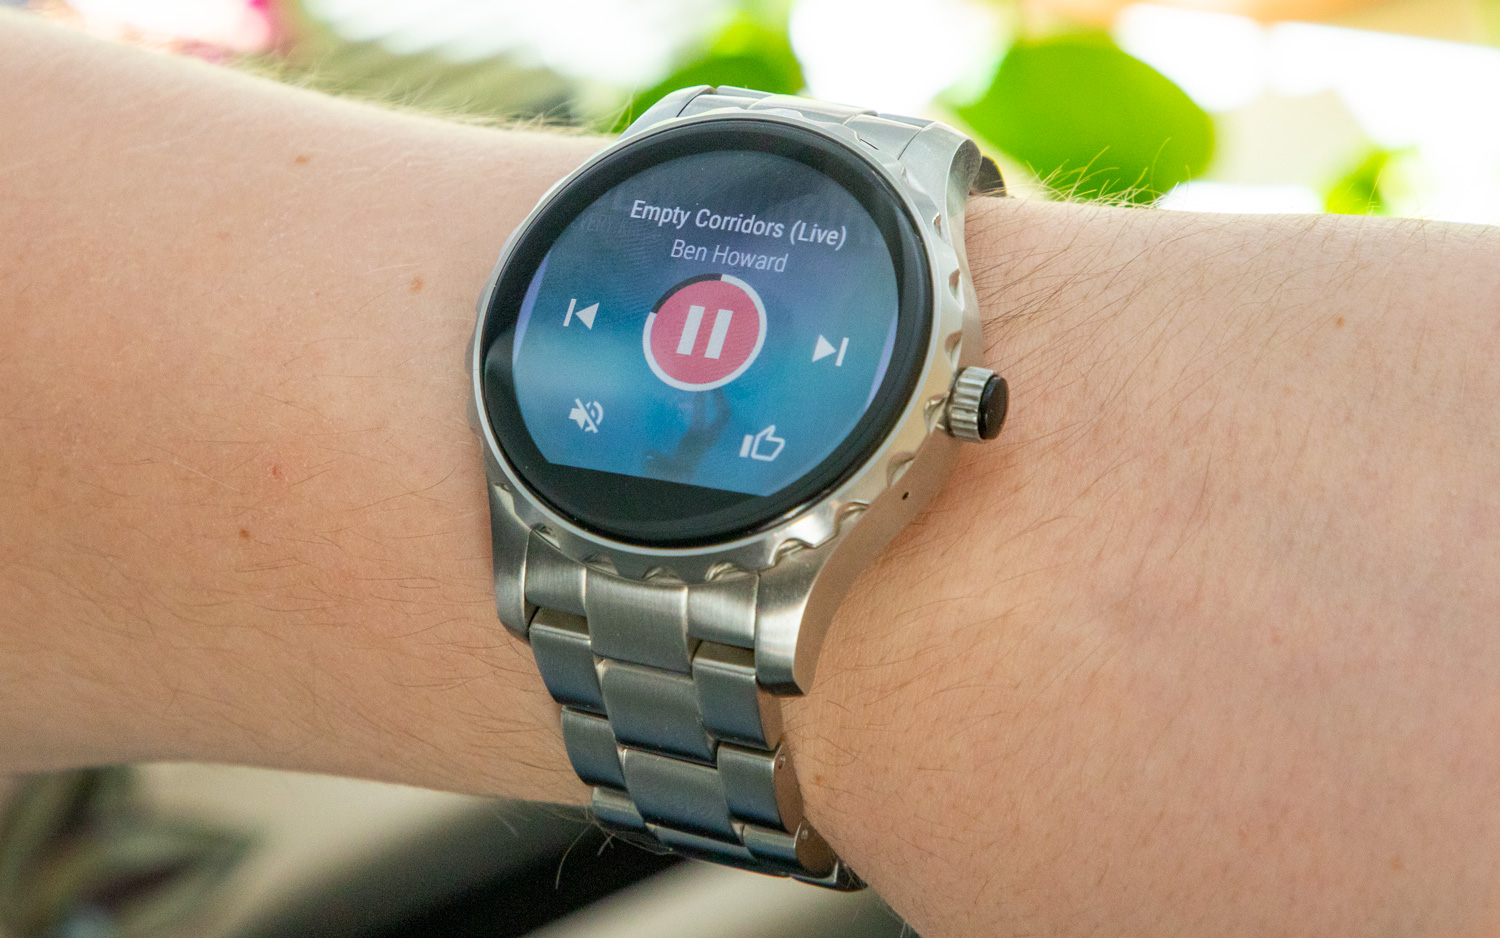 My Month with a Wear OS Android Watch: The Good, Bad and